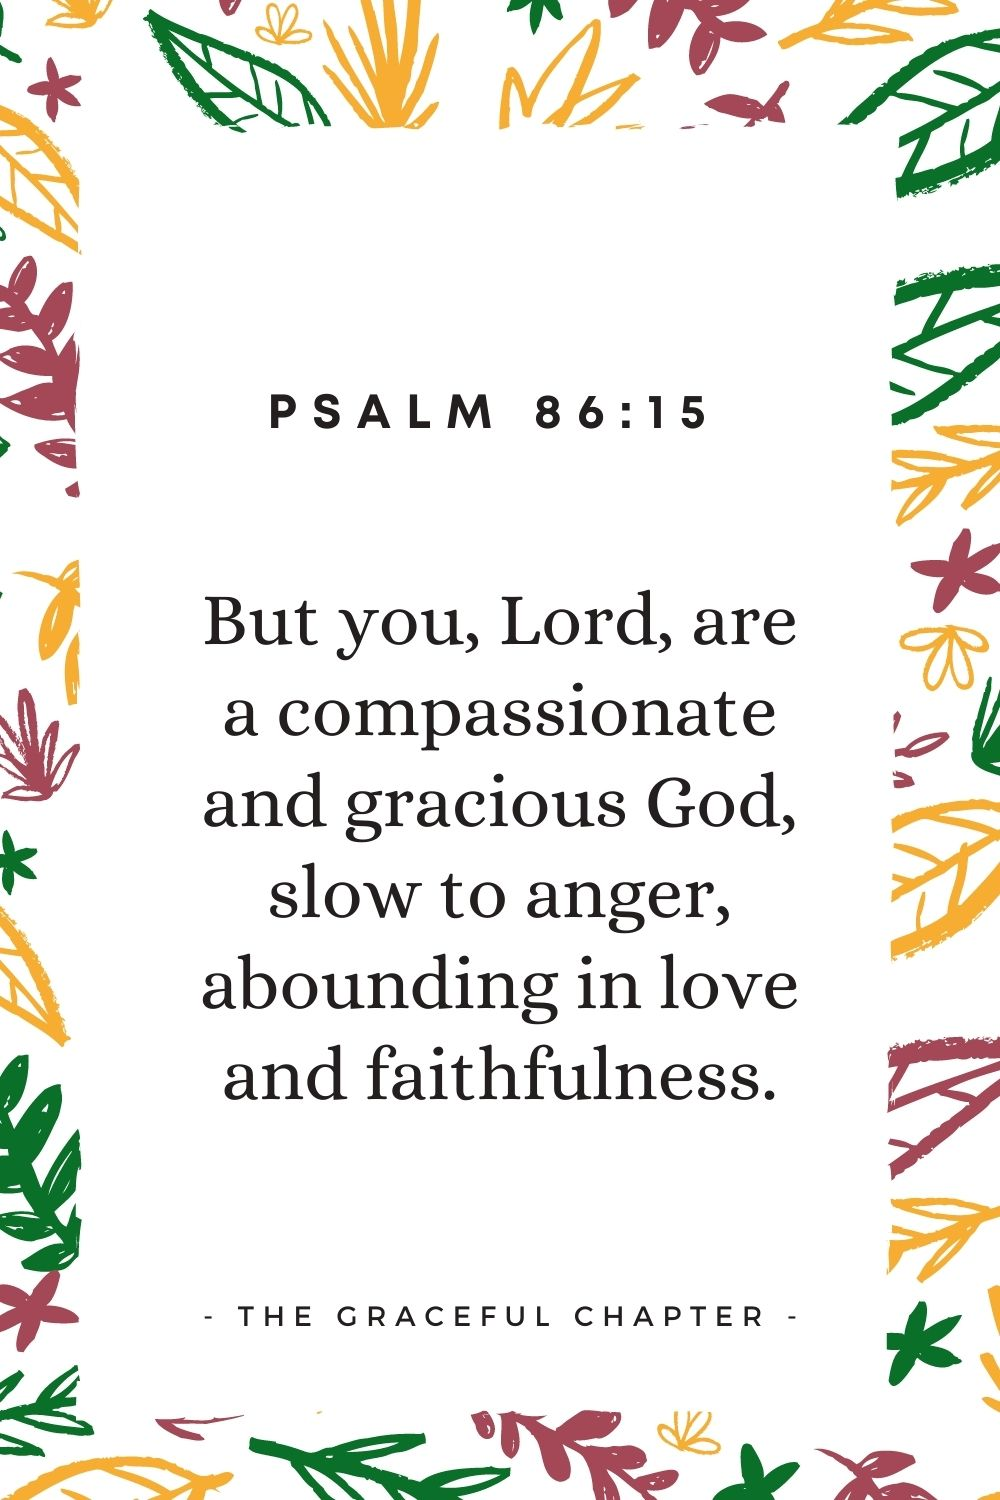 """But you, Lord, are a compassionate and gracious God, slow to anger, abounding in love and faithfulness."""" Psalm 86:15"""